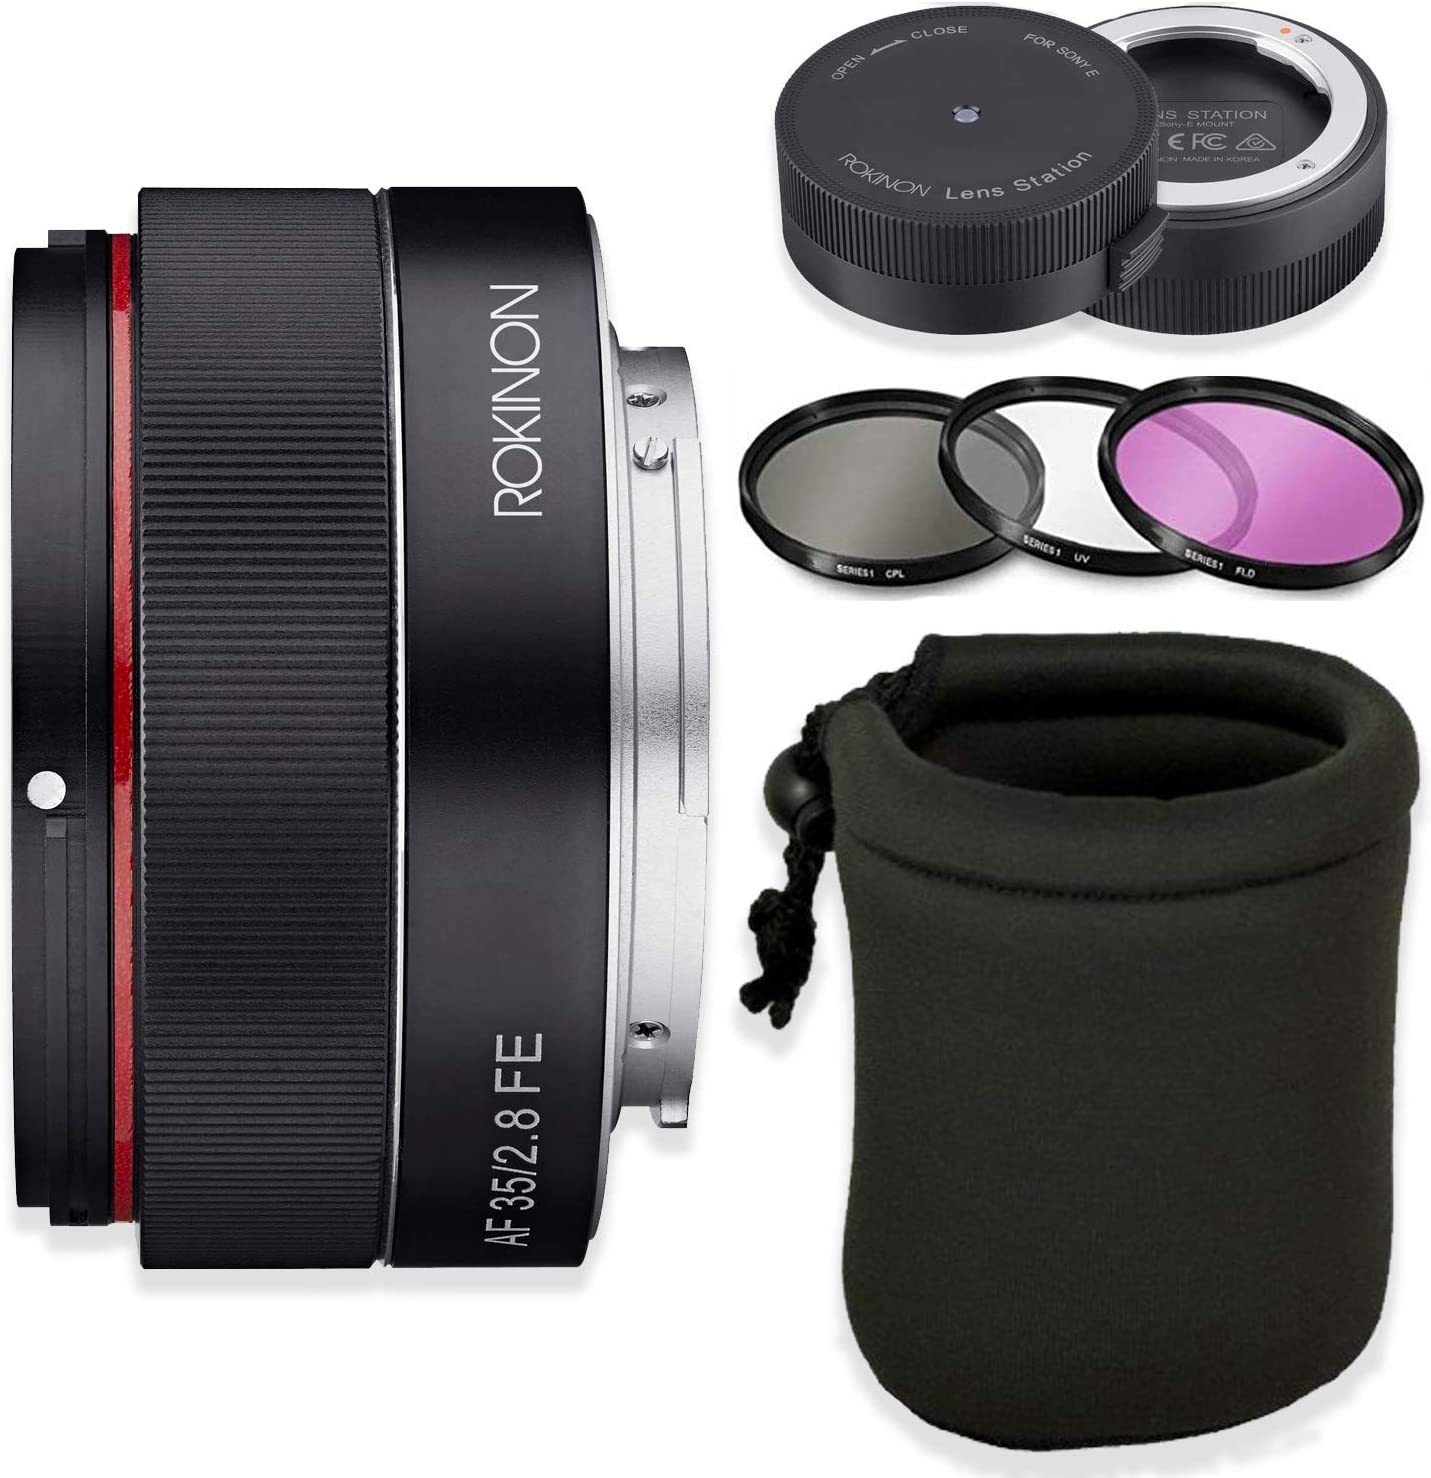 Rokinon AF 35mm f/2.8 FE Lens for Sony E-Mount Cameras with Sony Lens Station + HD Filters & Lens Case